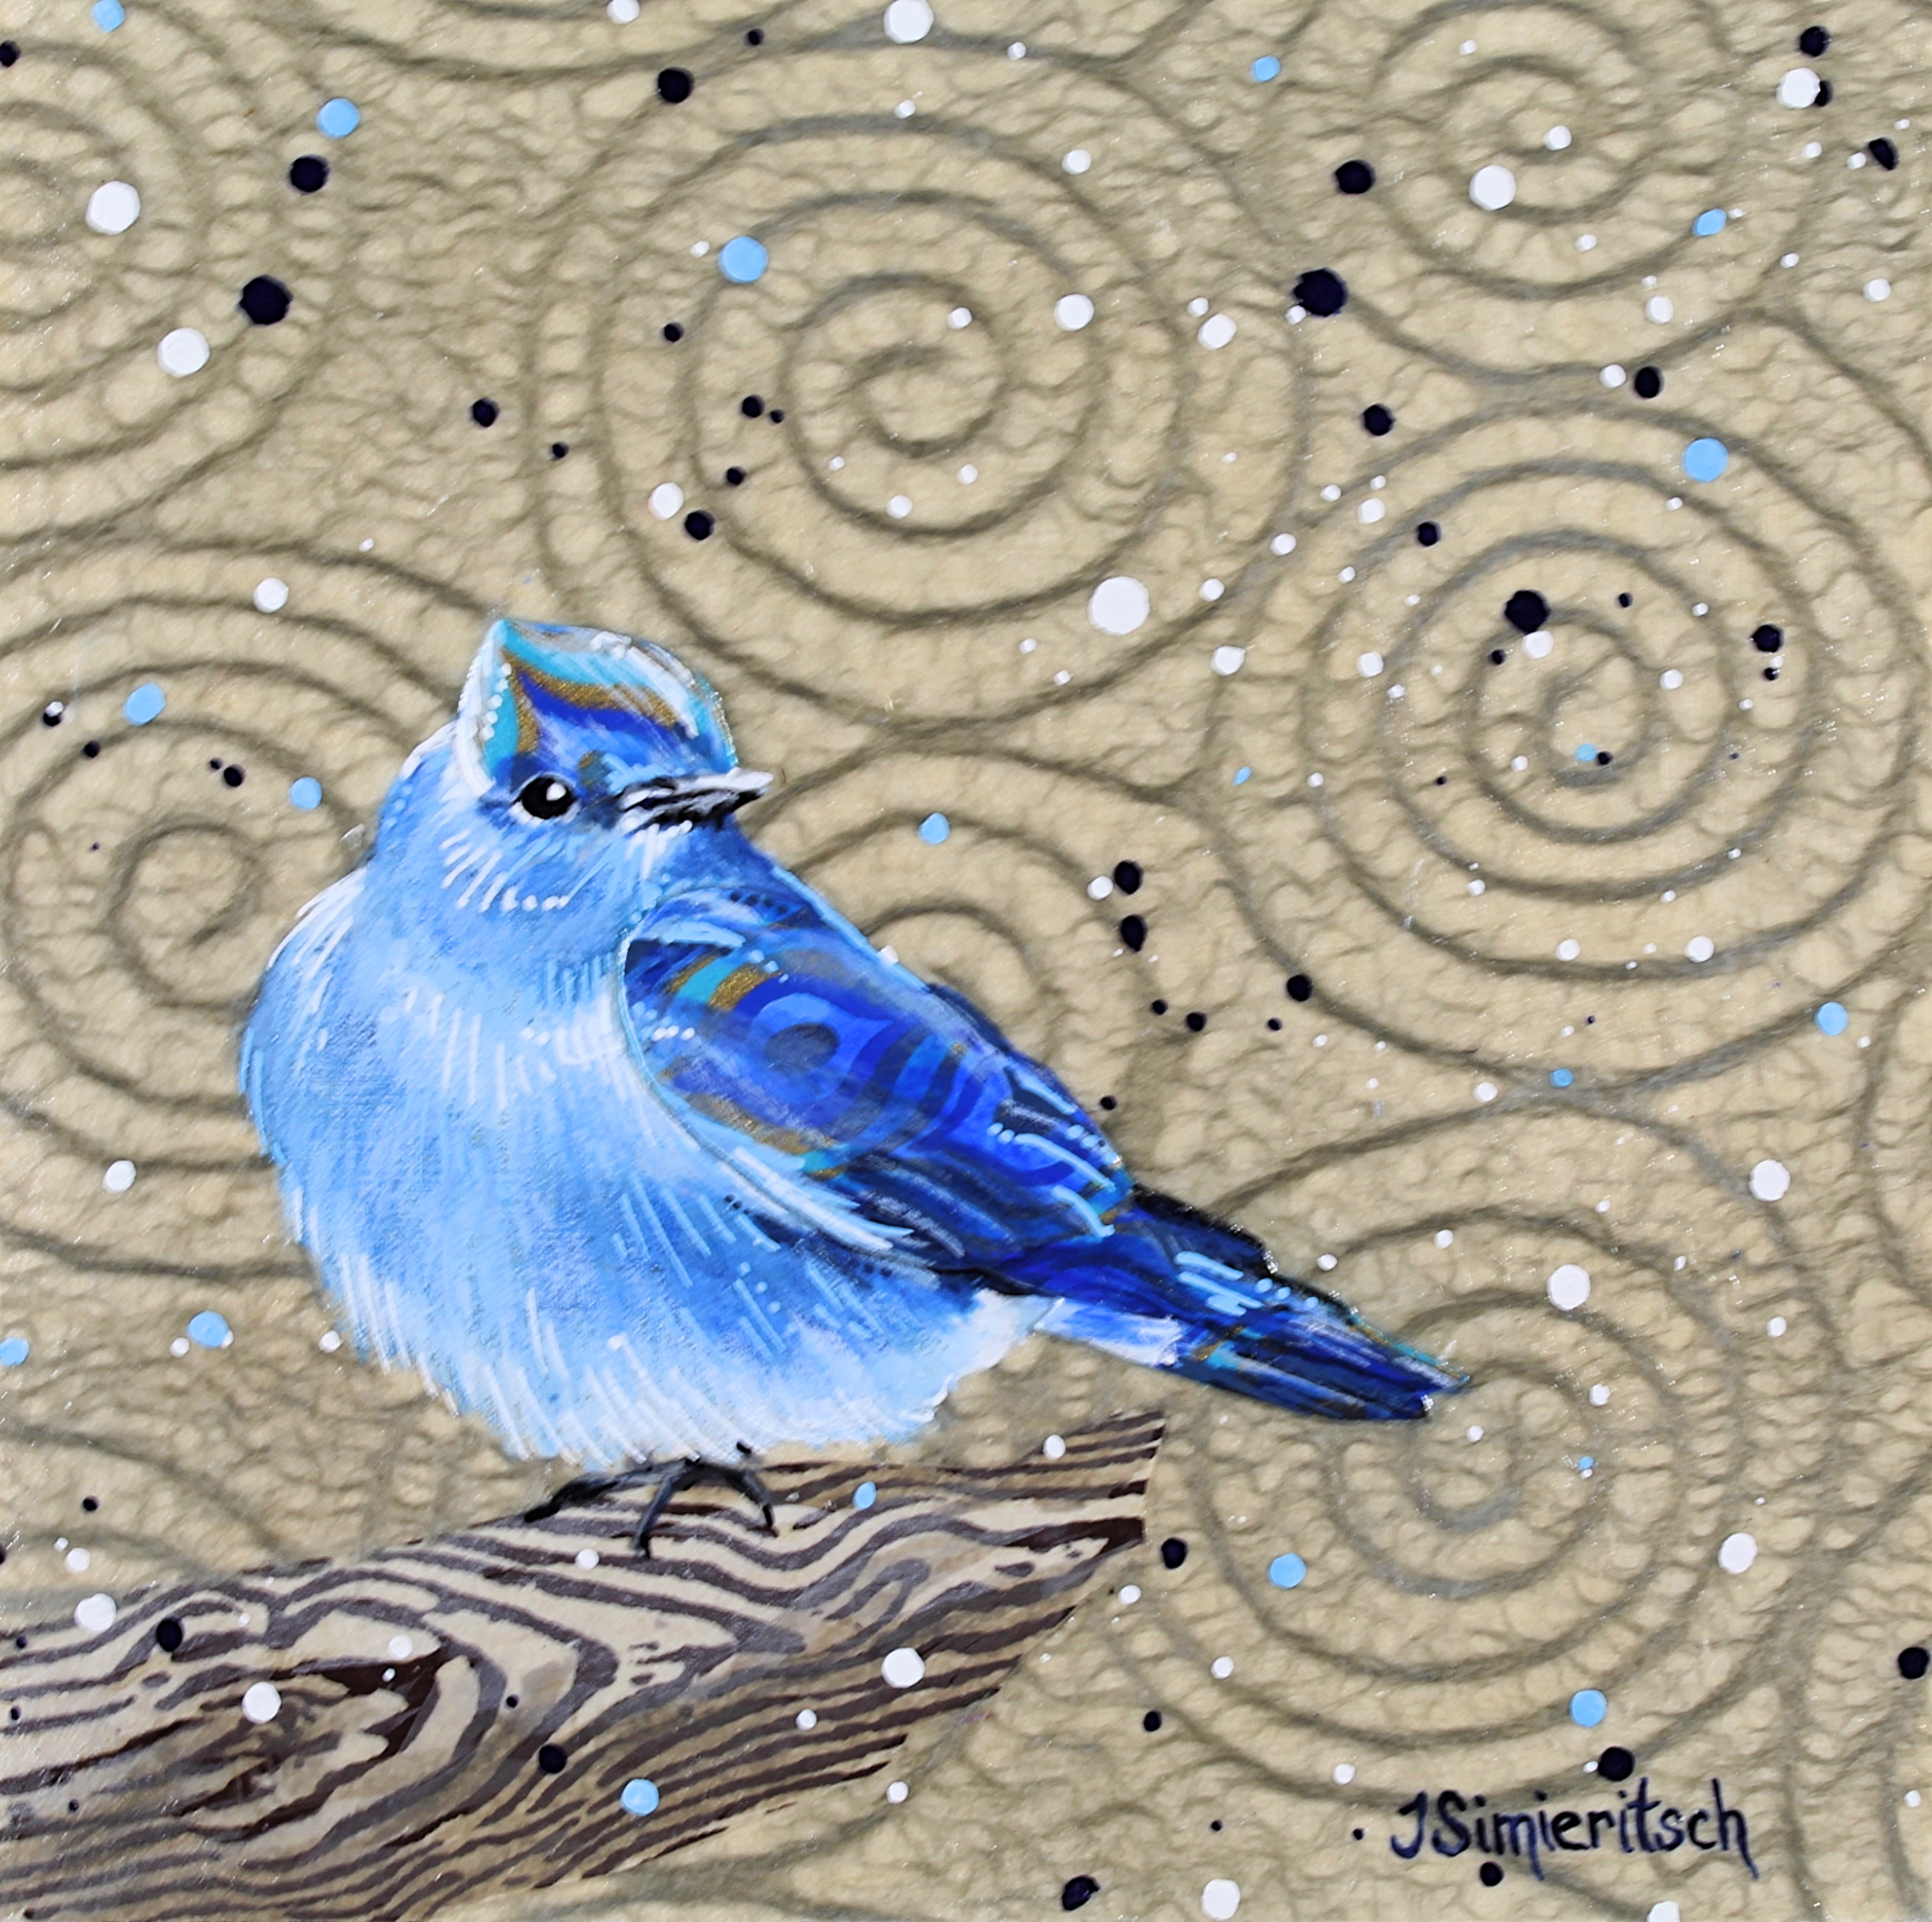 Swirly Bluebird